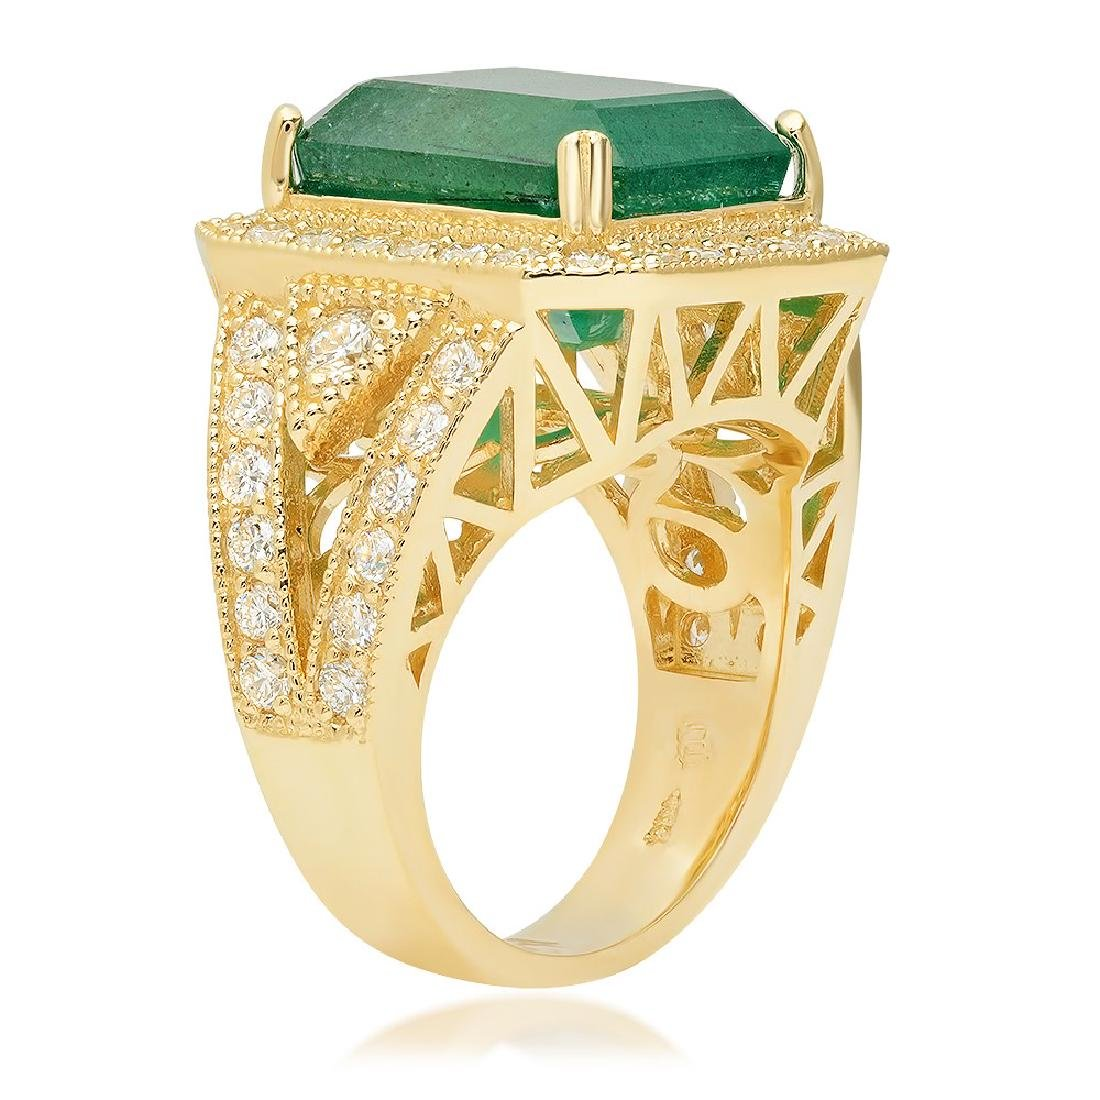 14K Yellow Gold, 8.00cts Emerald, 1.60cts Diamond Ring - 4